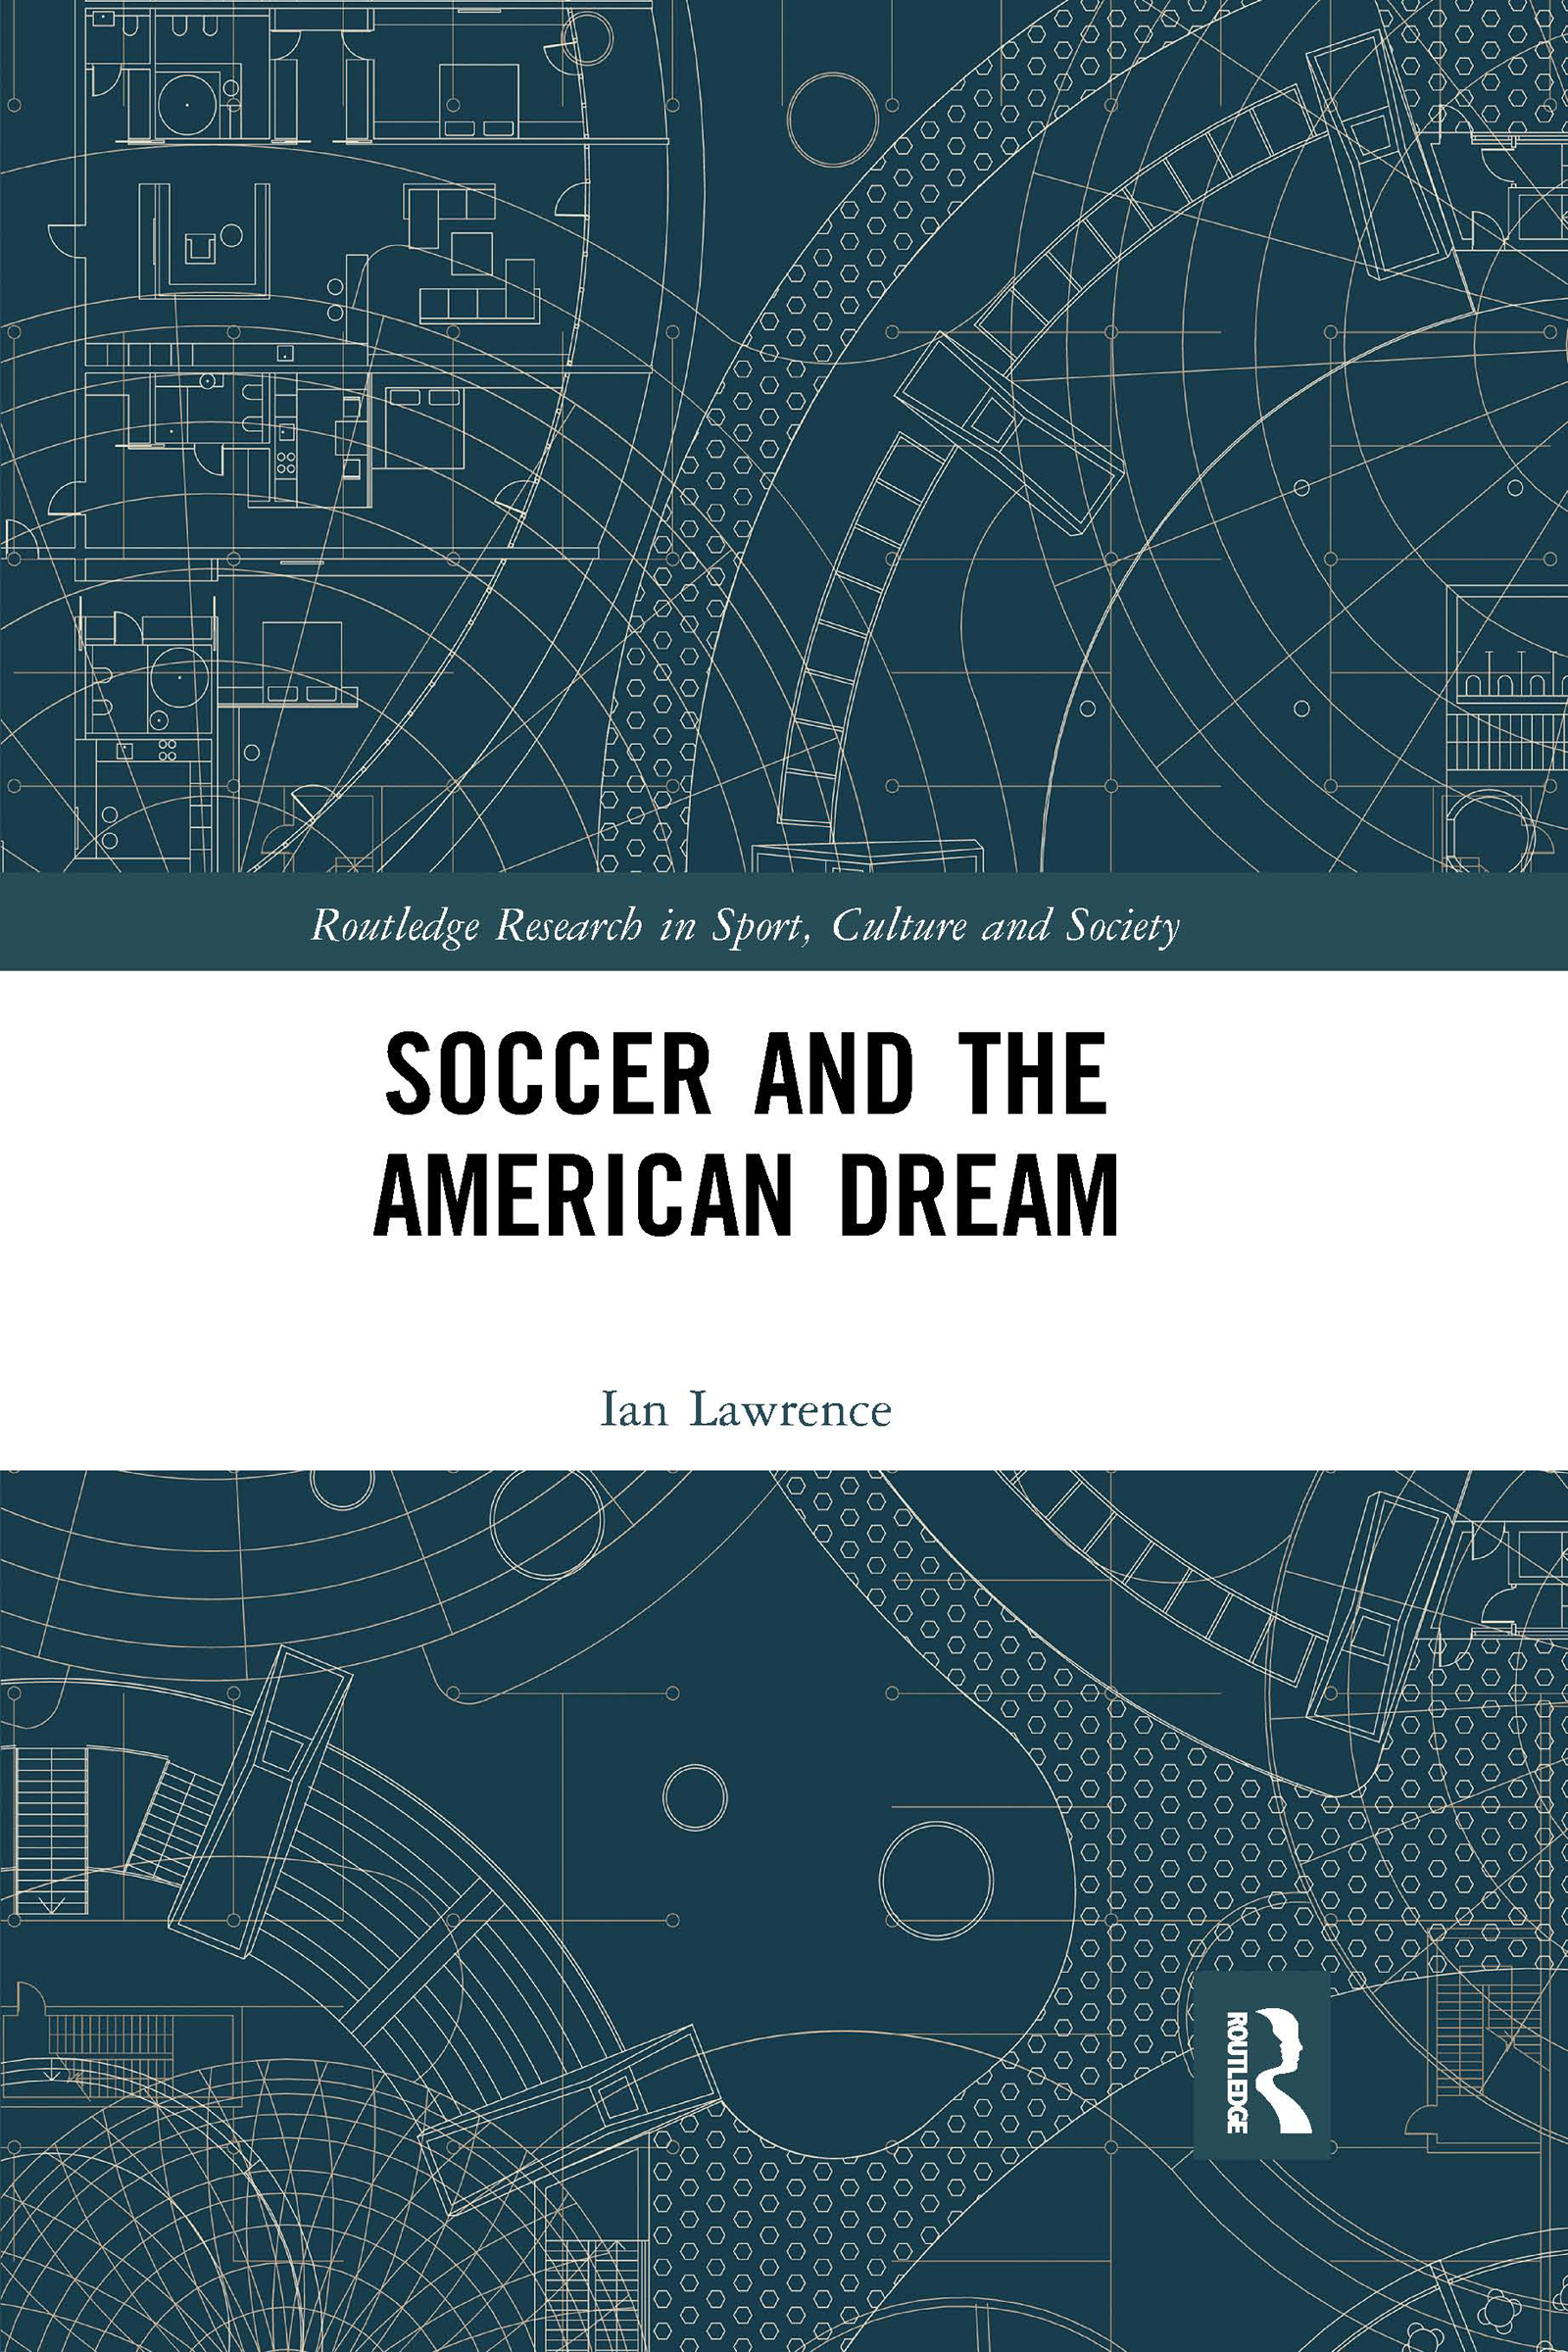 Soccer and the American Dream